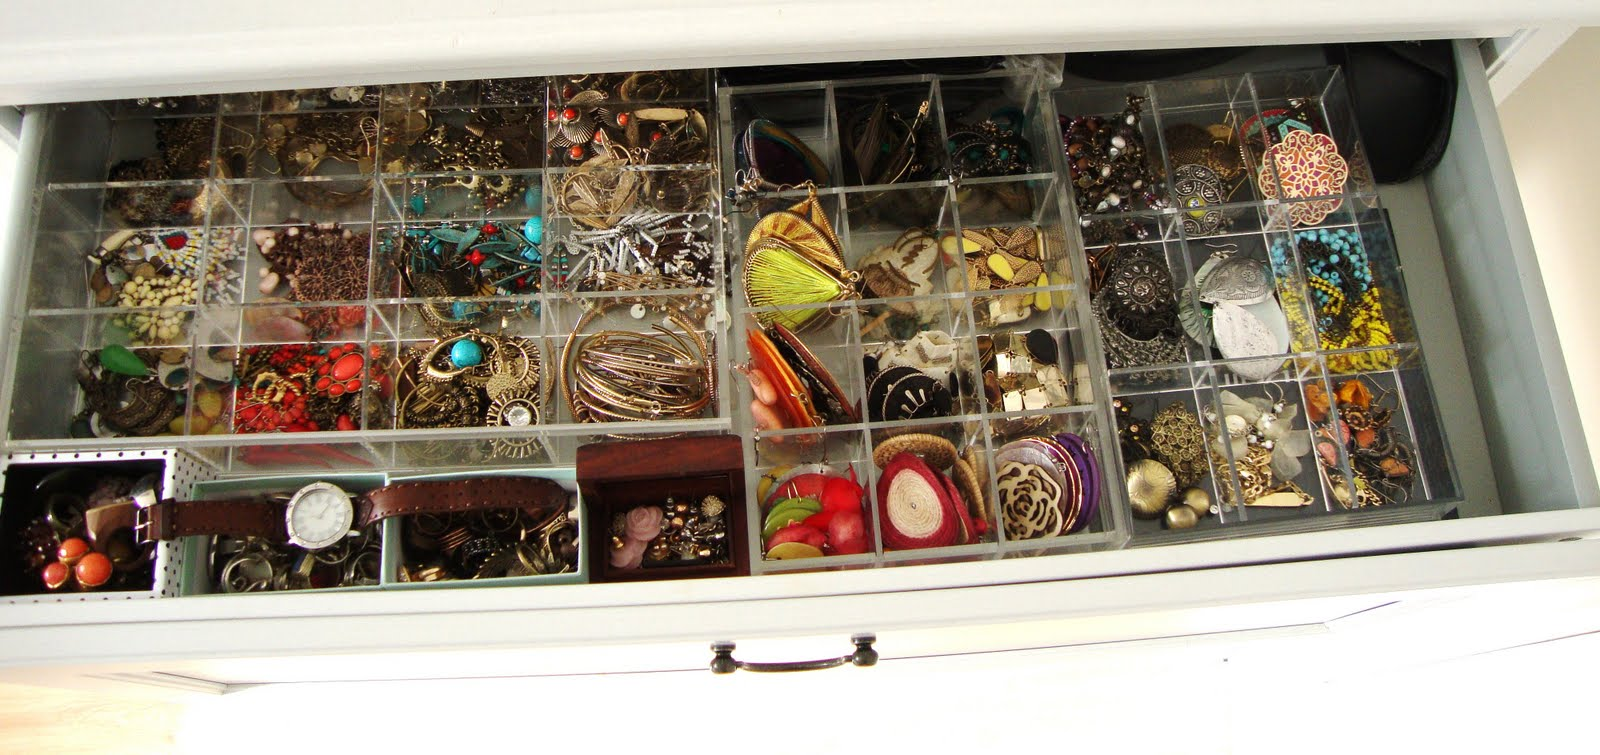 Ikea Aspelund Wardrobe Inside ~ have used acrylic dividers from Muji for all of my earrings They